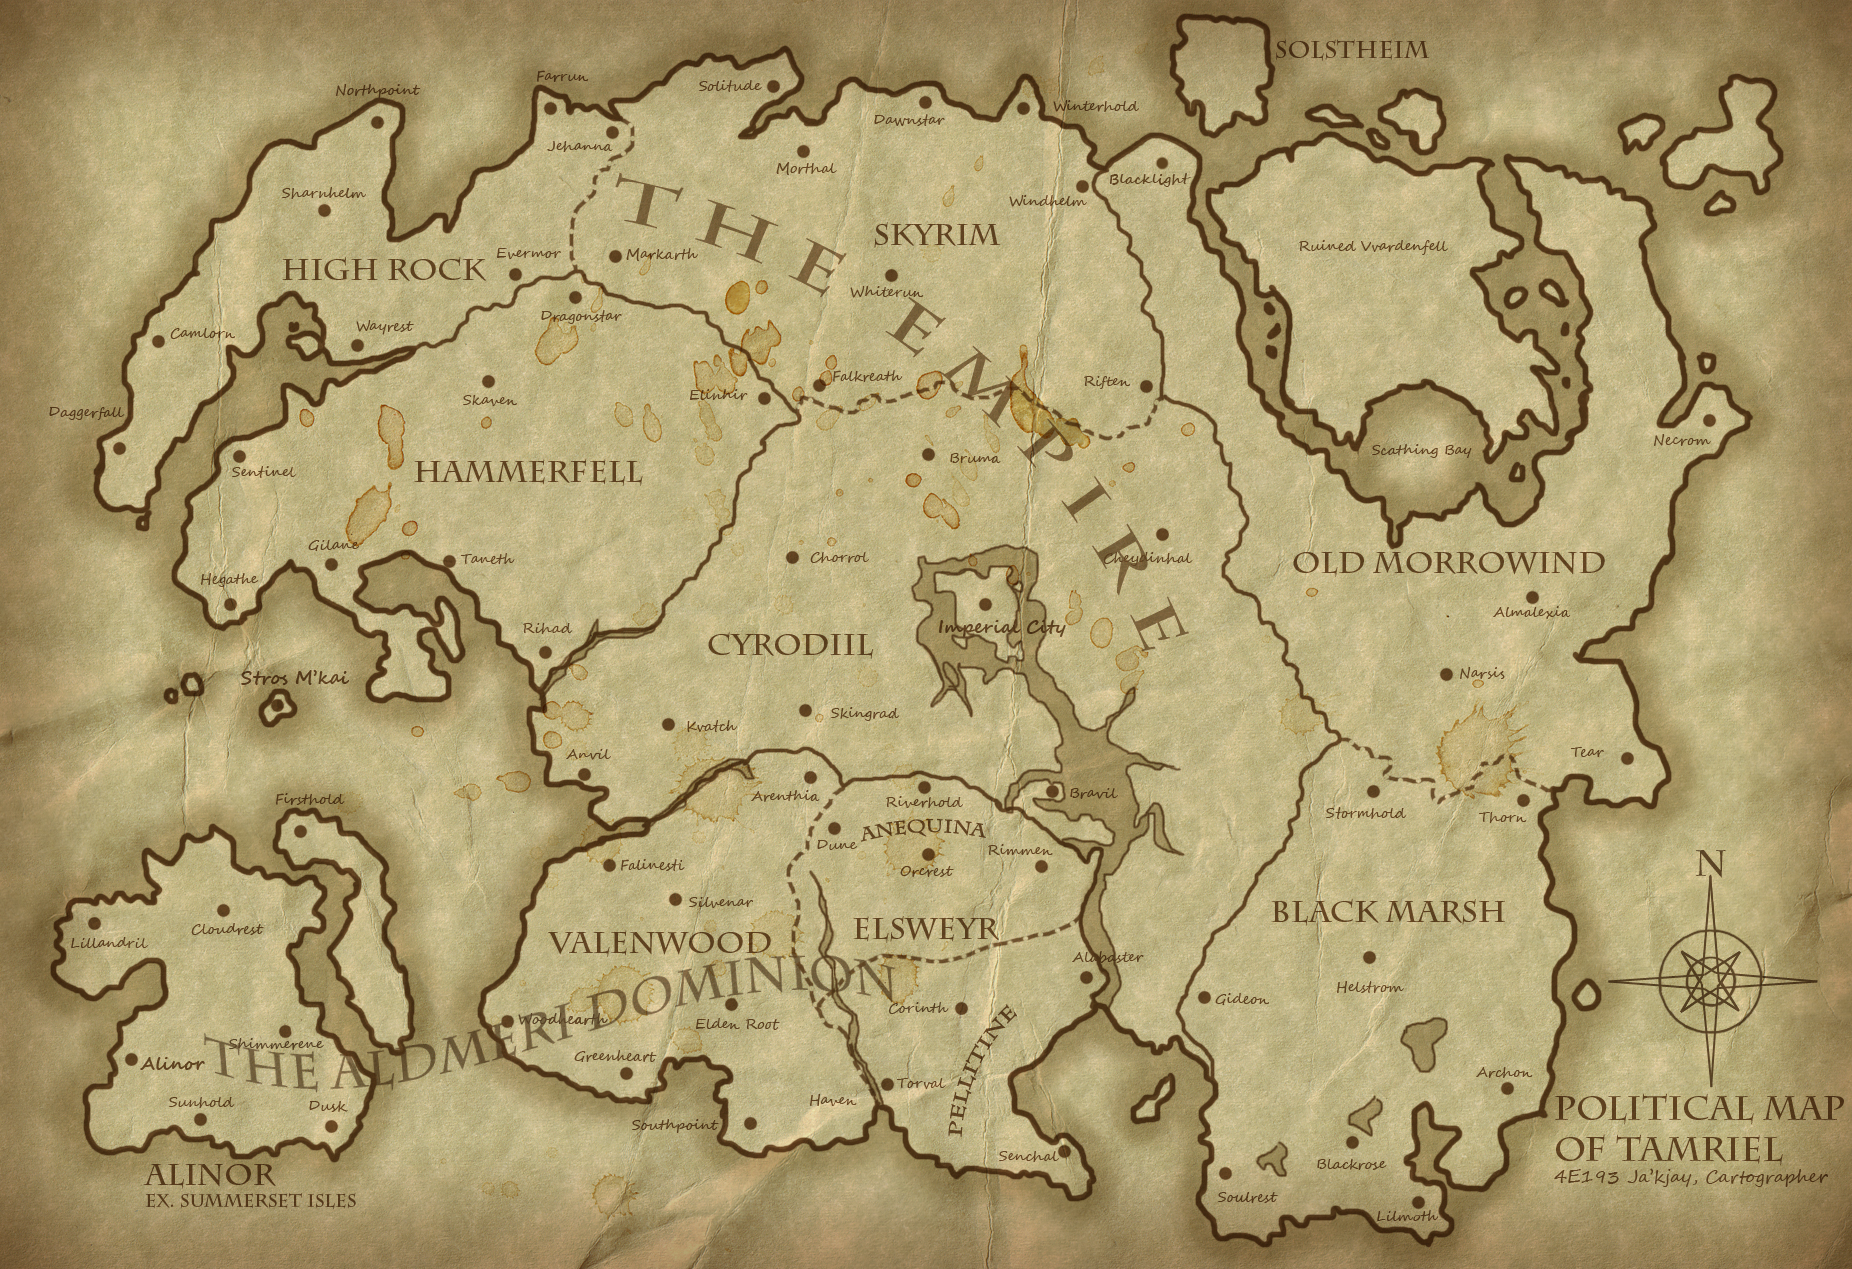 Political Map of Tamriel 4E193 - Revised